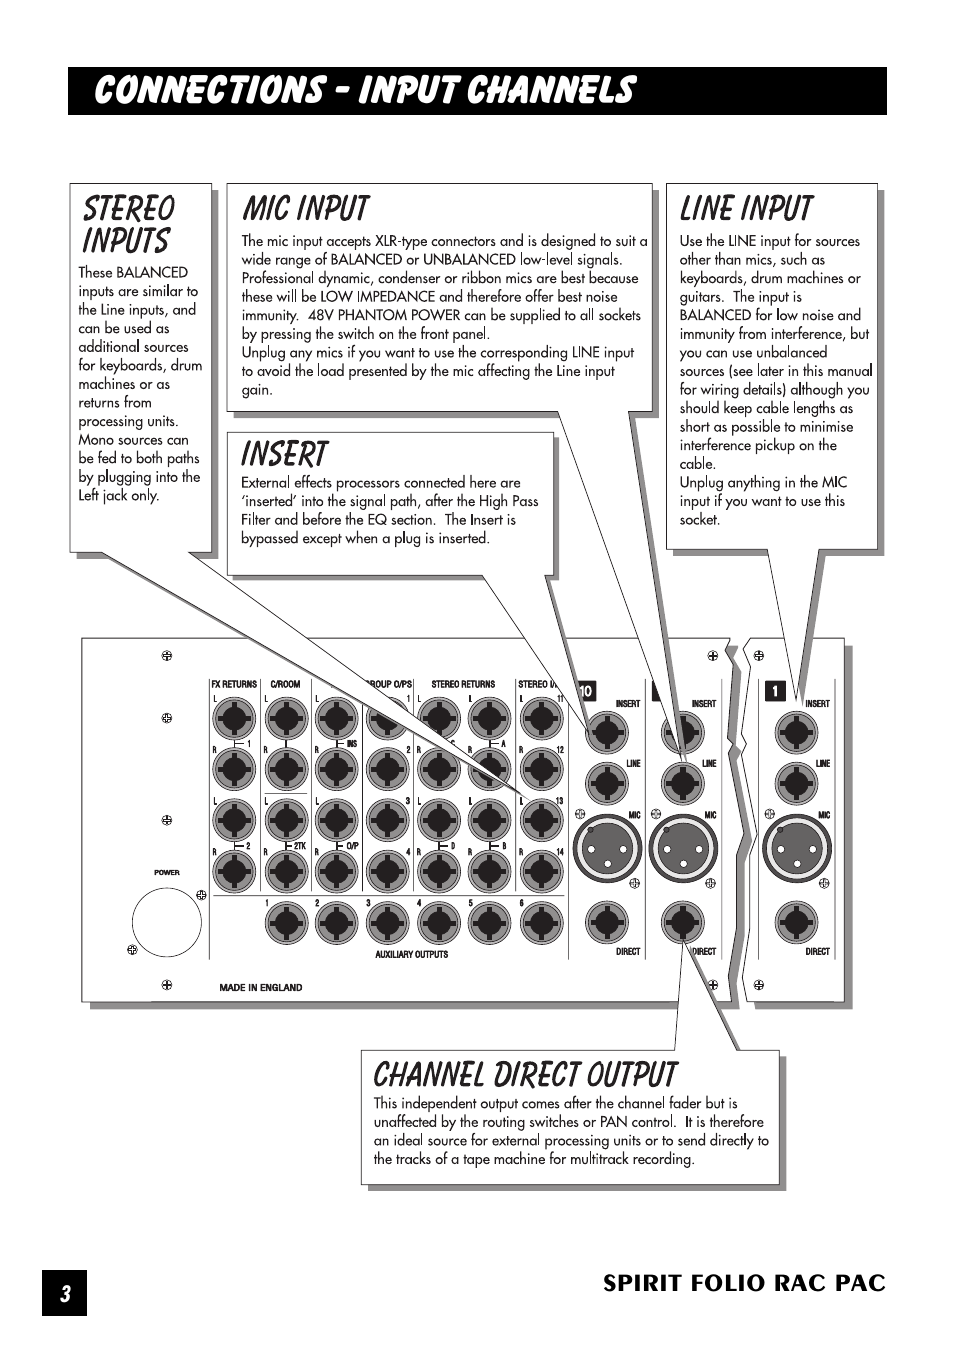 Connections - input channels | SoundCraft Spirit Folio Rac Pac User Manual  | Page 4 / 23